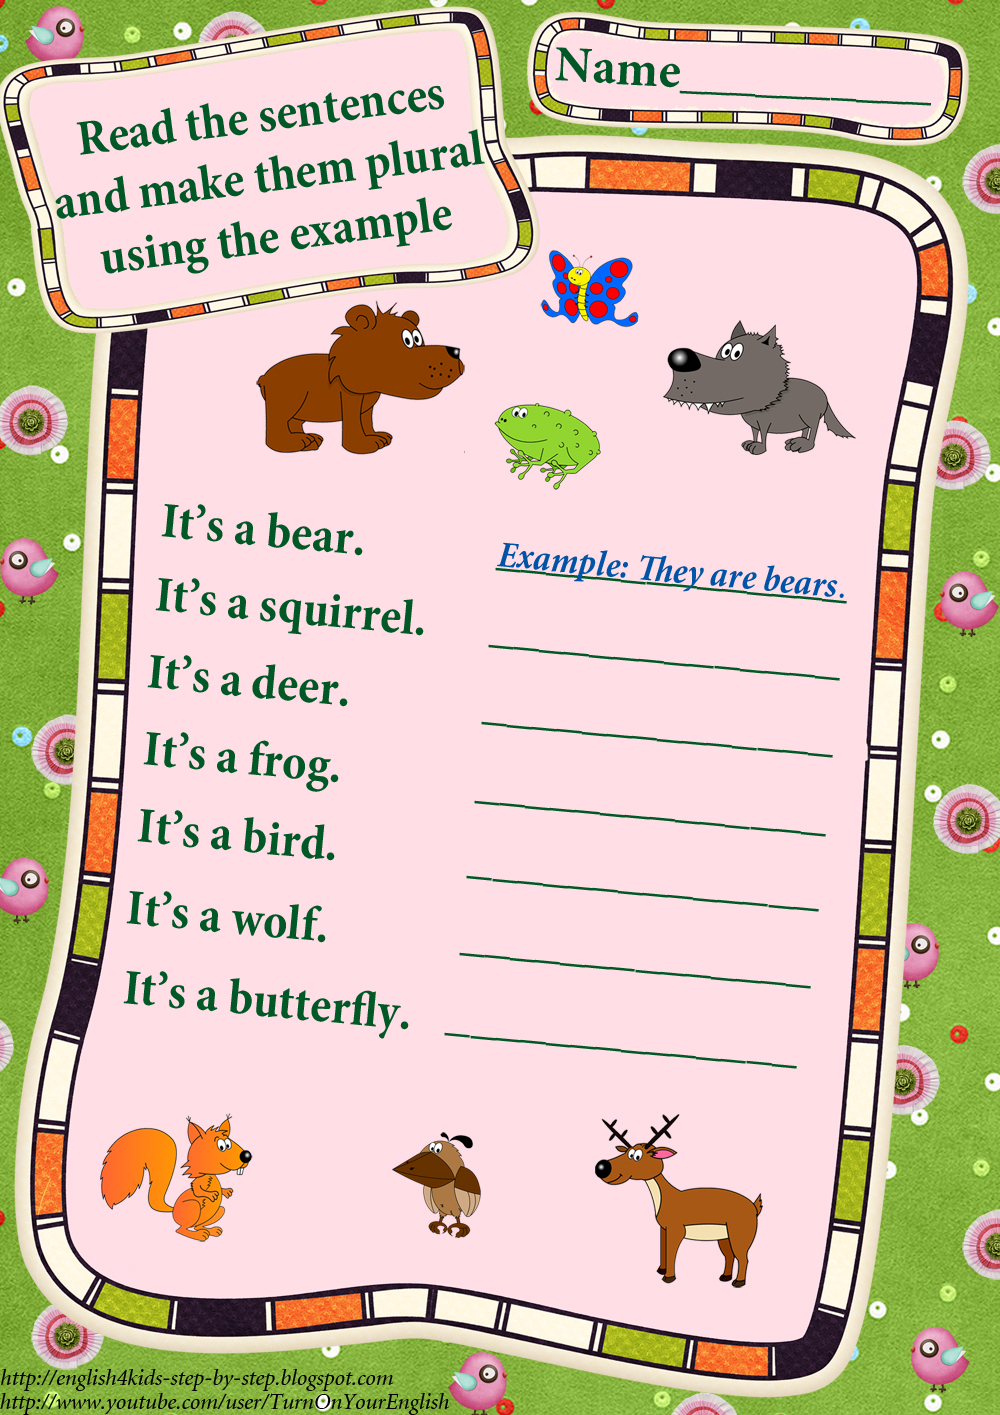 Workbooks making words plural worksheets : Forest Animals Worksheets